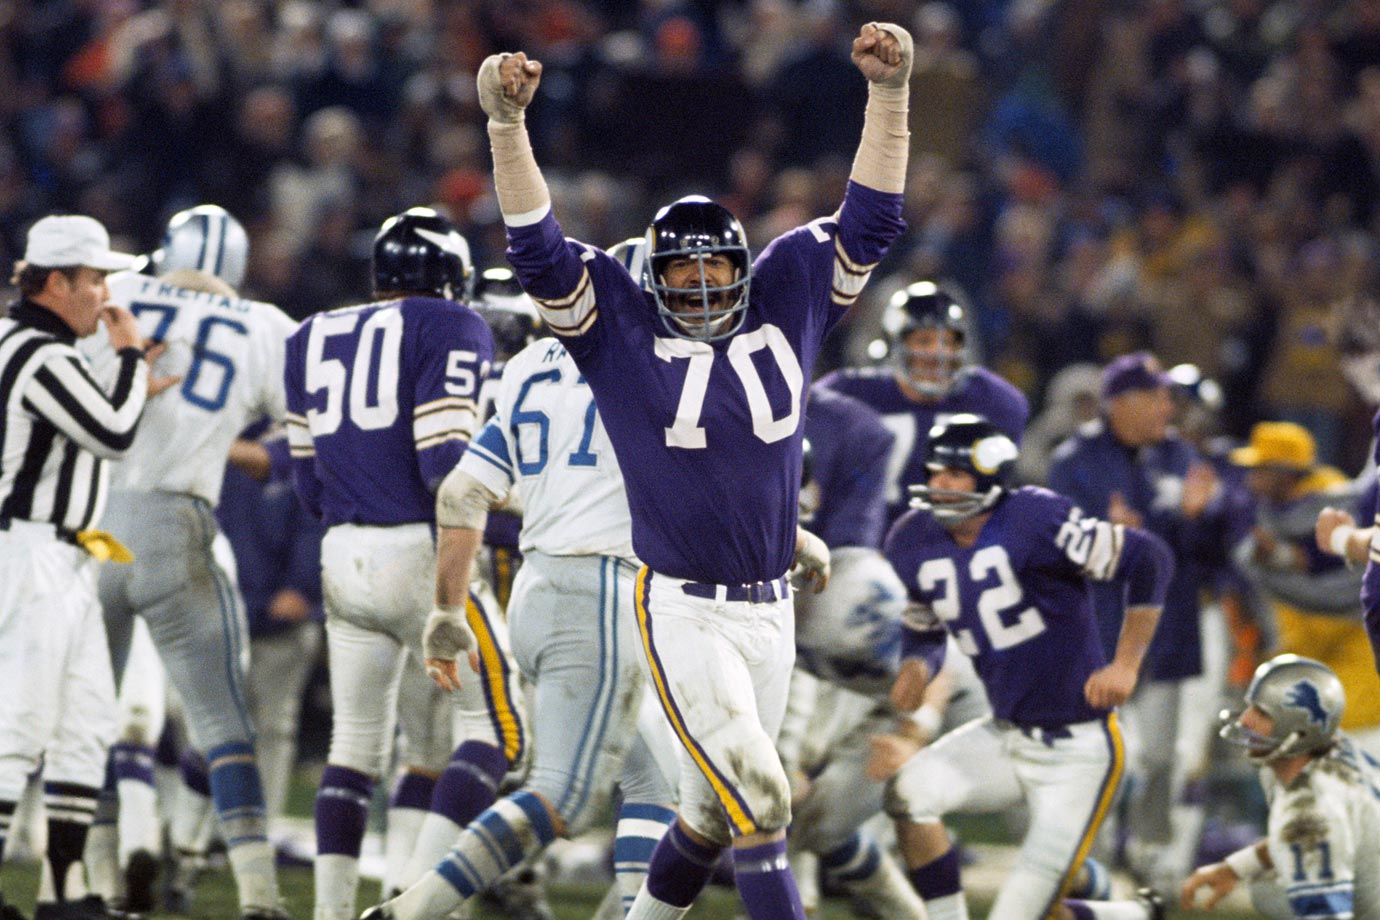 Perhaps the most glaring omission from the Hall of Fame, Marshall started 270 straight games for the Vikings, an incredible mark for a lineman. In his final game, he picked up two sacks and even played a bit of offensive tackle before his teammates carried him off the field. The Vikings credit him with 127 unofficial quarterback sacks, and he played in all four of Minnesota's Super Bowls. He was overshadowed by Alan Page and Carl Eller on the Purple People Eaters line, but he deserves his own bust in Canton.